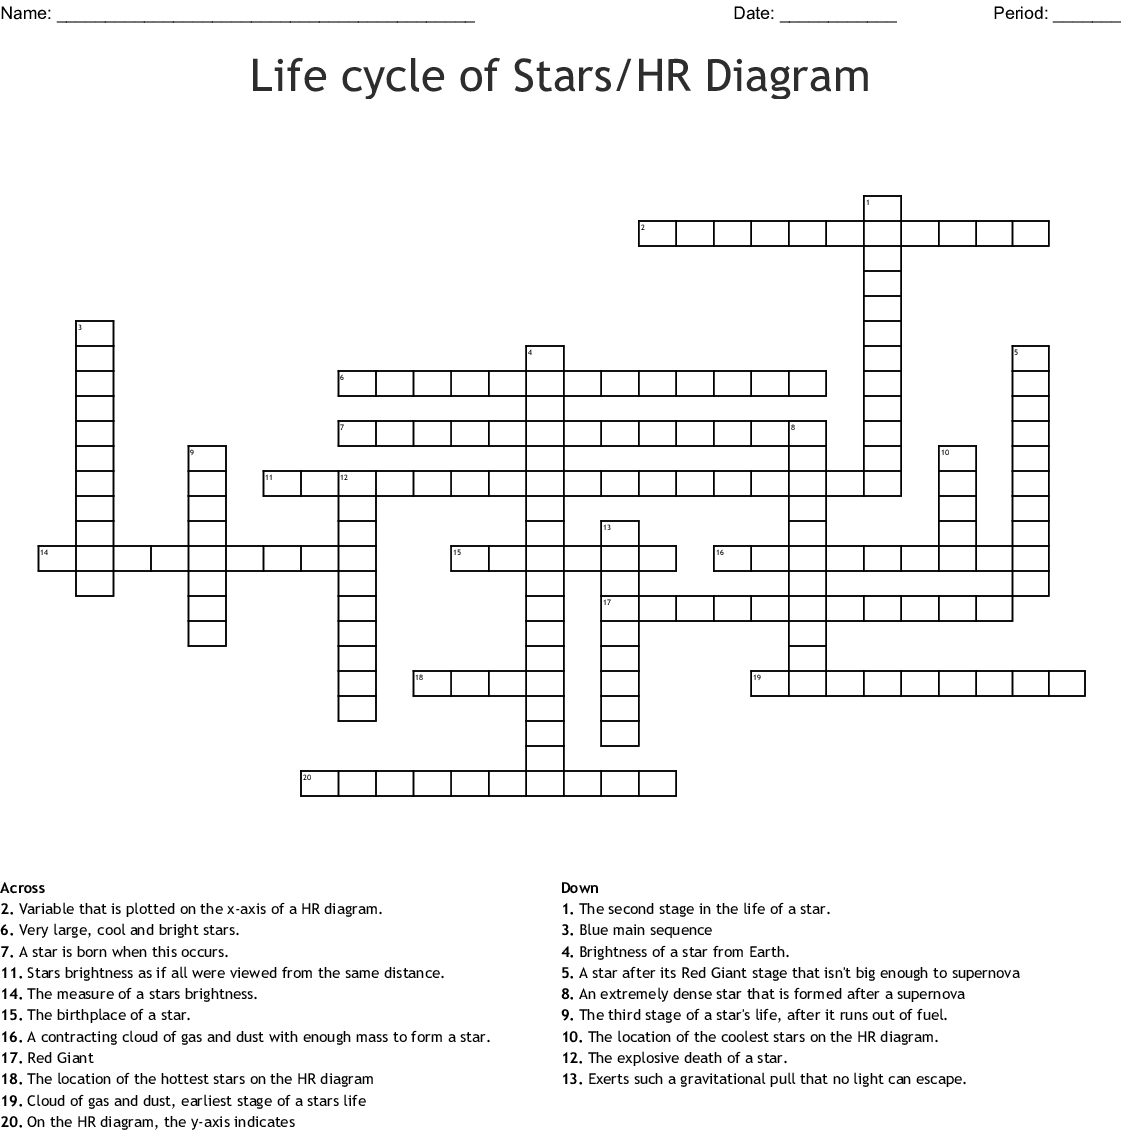 hight resolution of life cycle of stars hr diagram crossword wordmintlife cycle of stars hr diagram crossword